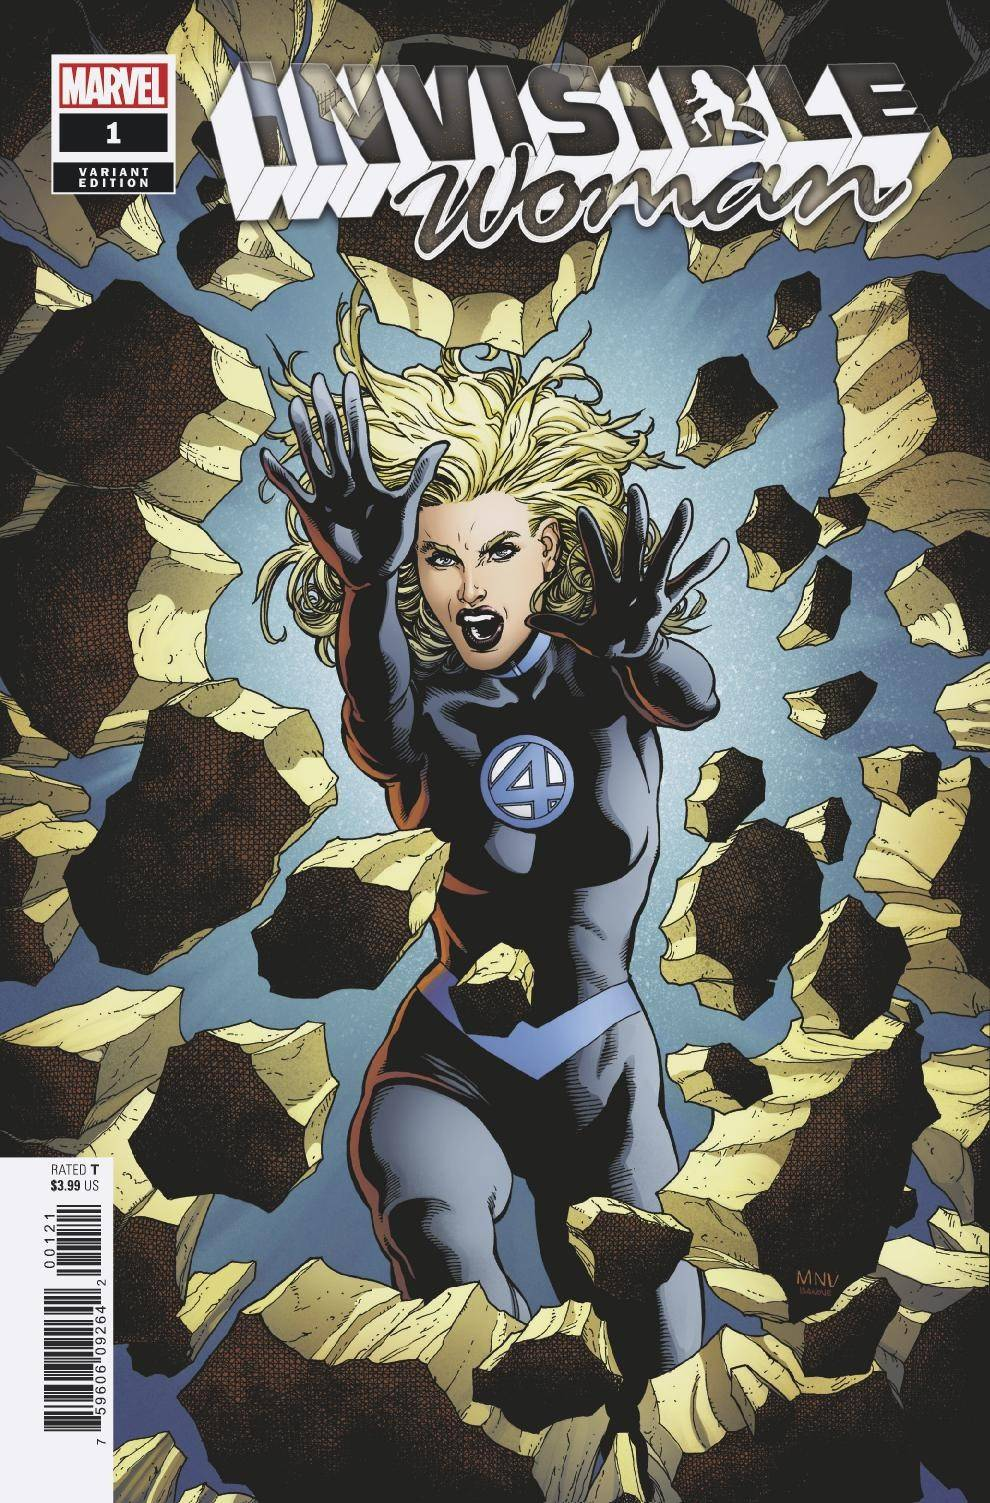 INVISIBLE WOMAN 1 of 5 MCNIVEN VAR.jpg